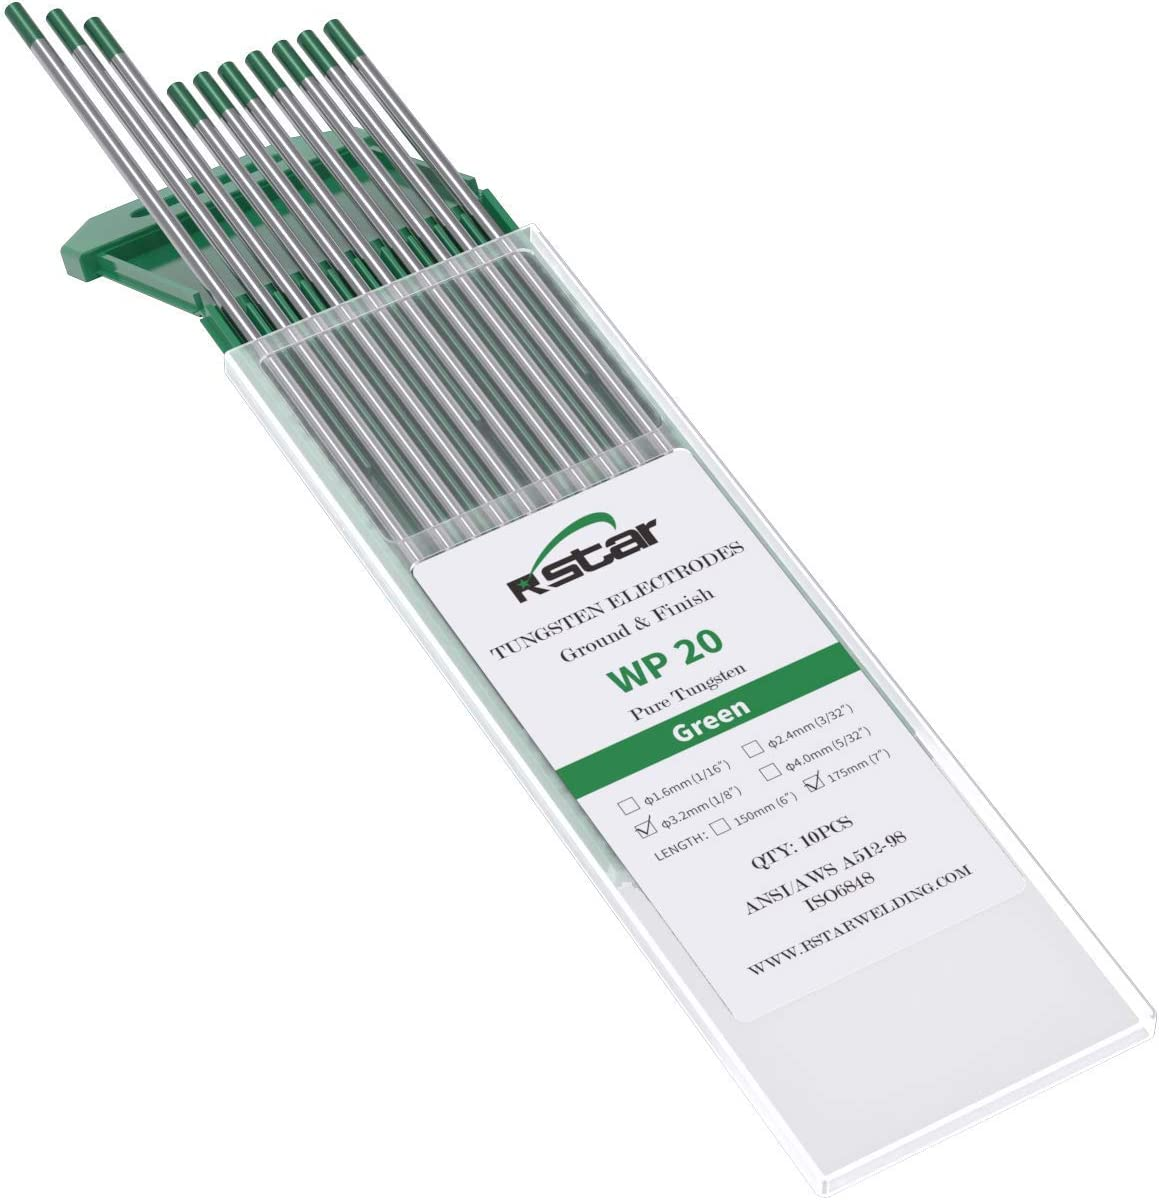 Free shipping on posting reviews Rstar TIG Welding Tungsten New sales Electrodes 1 Pure 99.5% 8âÂ